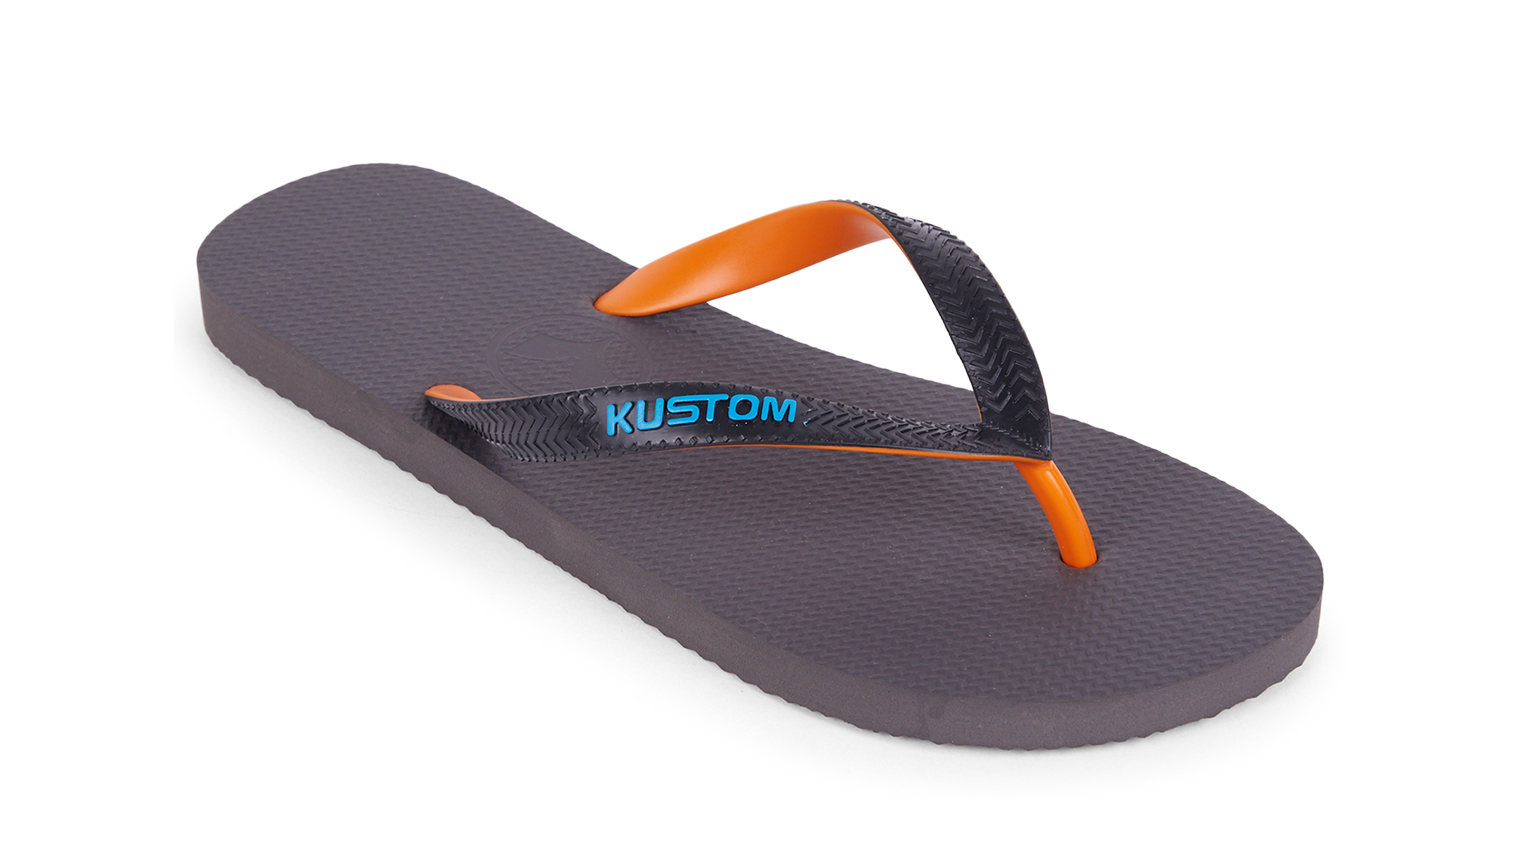 KUSTOM THONGS BLEND BASE THONG / ORANGE CHARCOAL